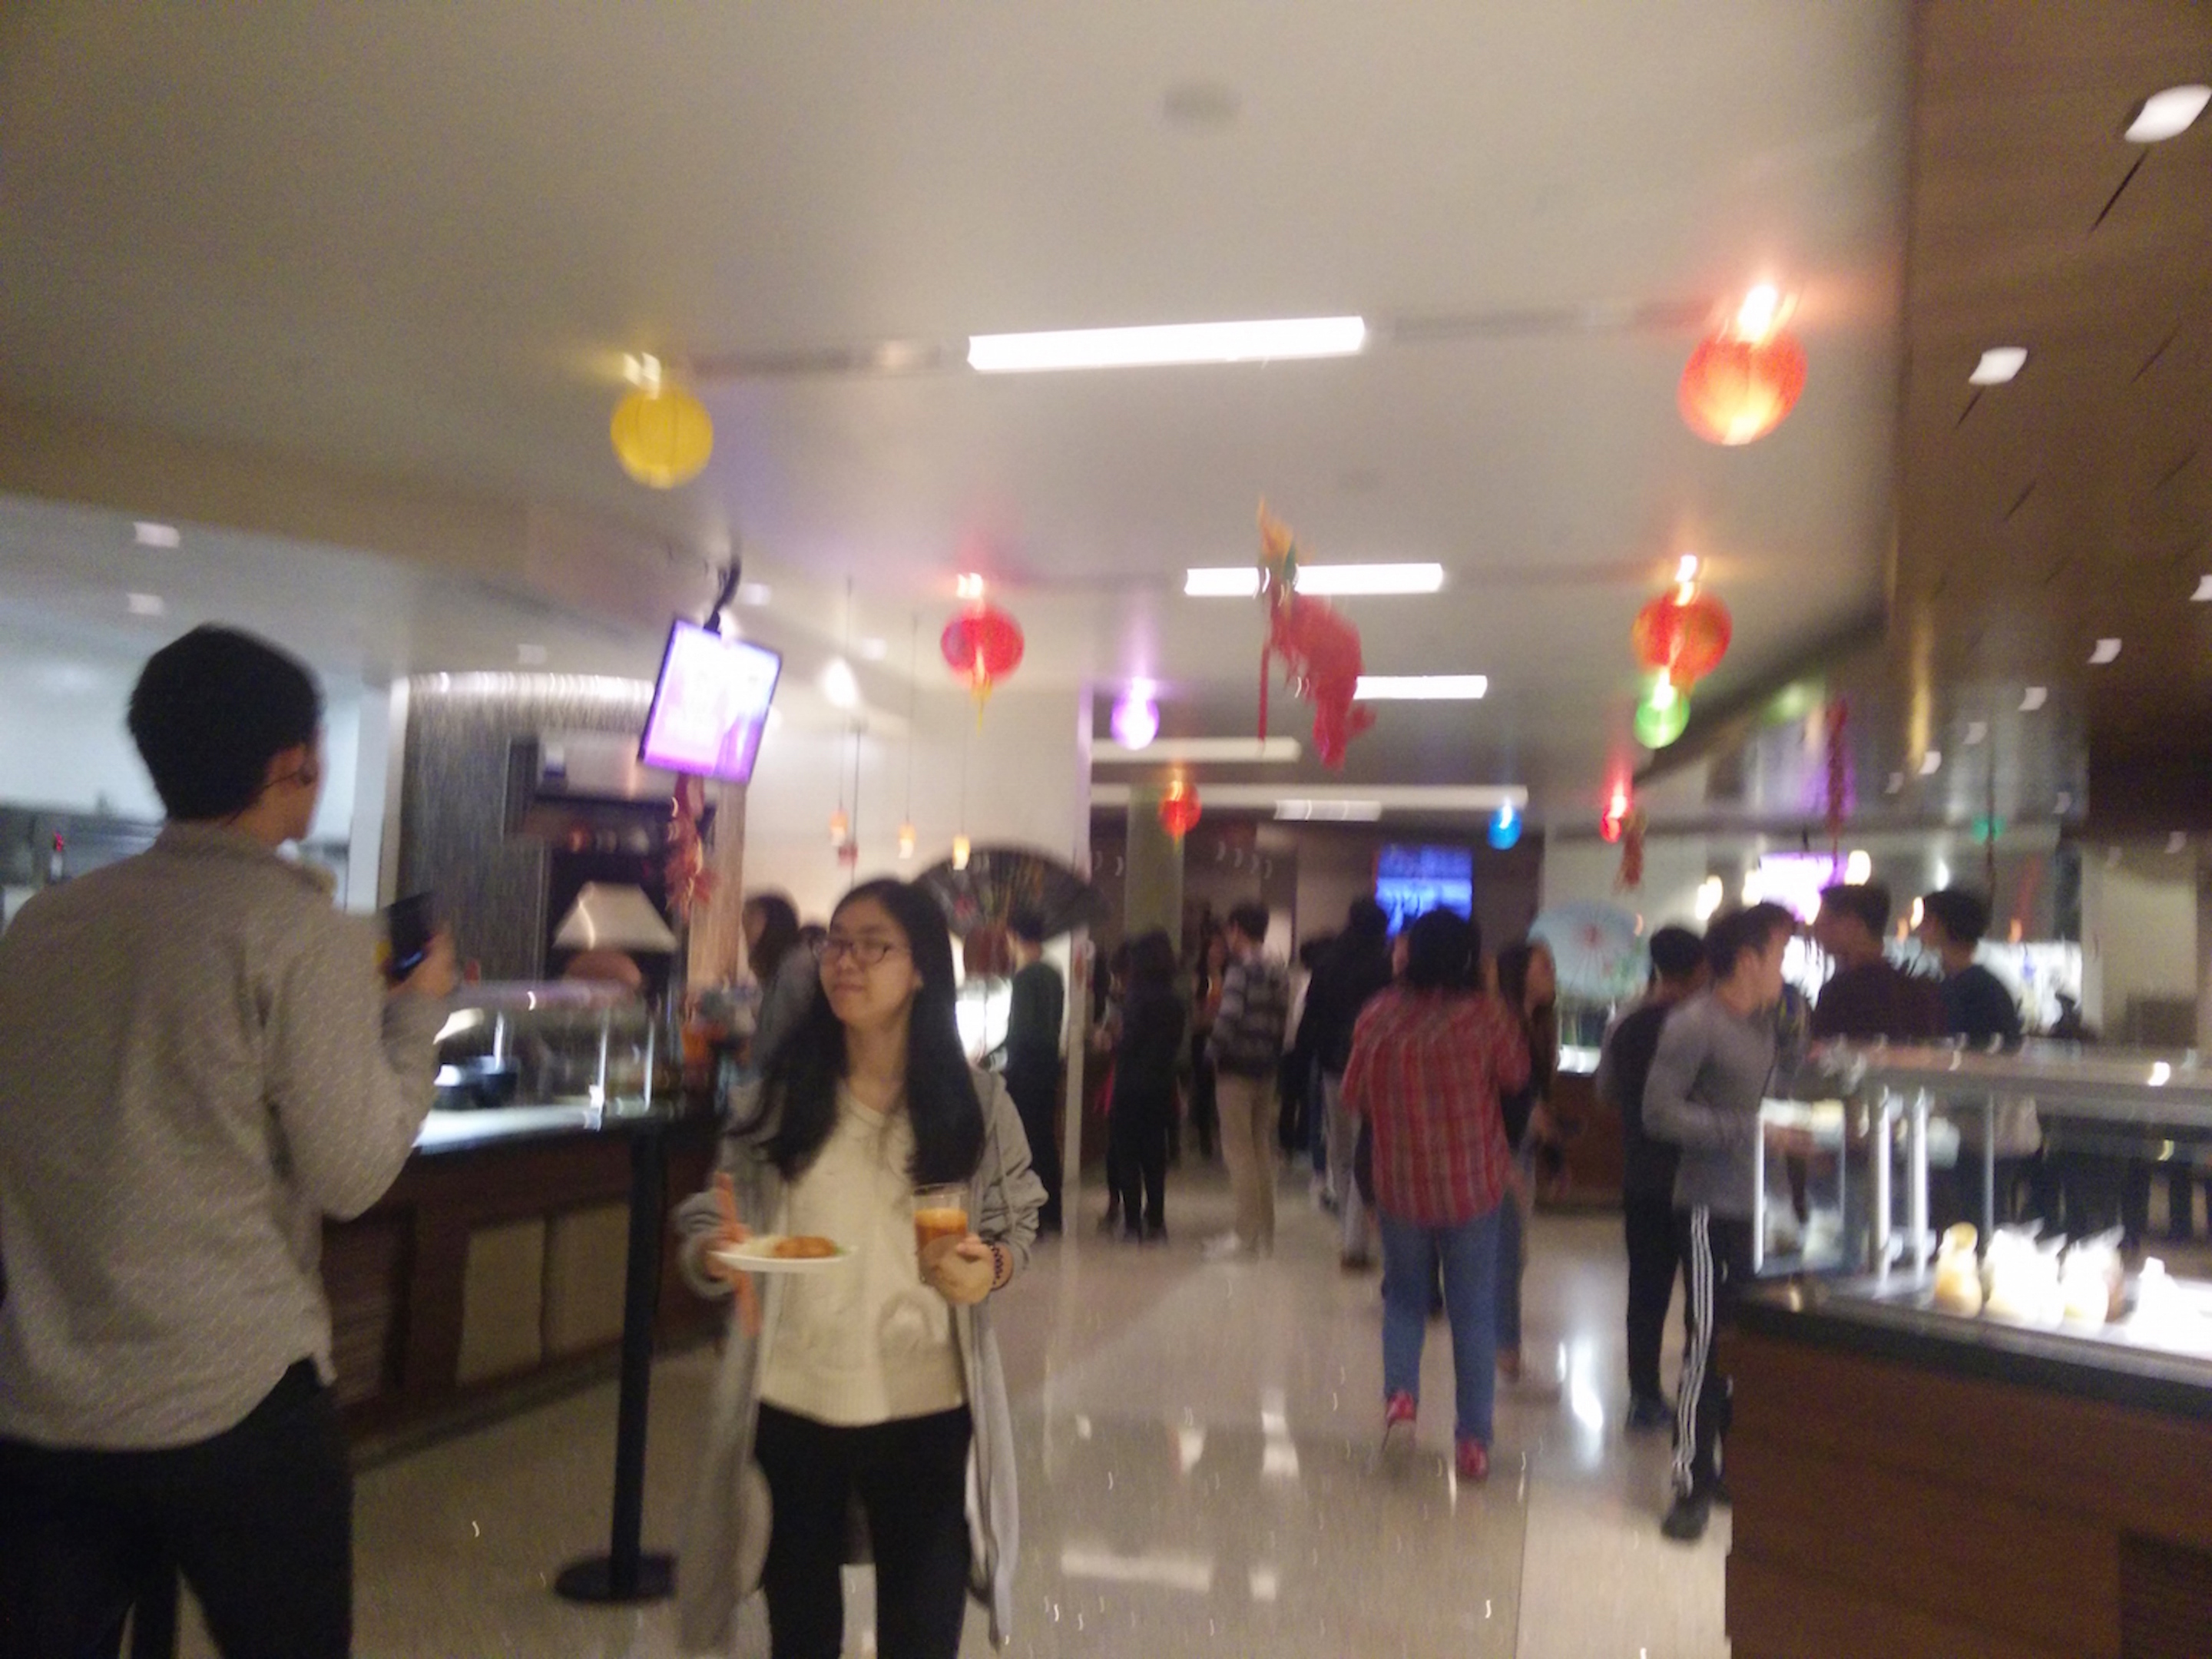 Feast s lunar new year dinner showcases traditions - Lunar new year decorations ...